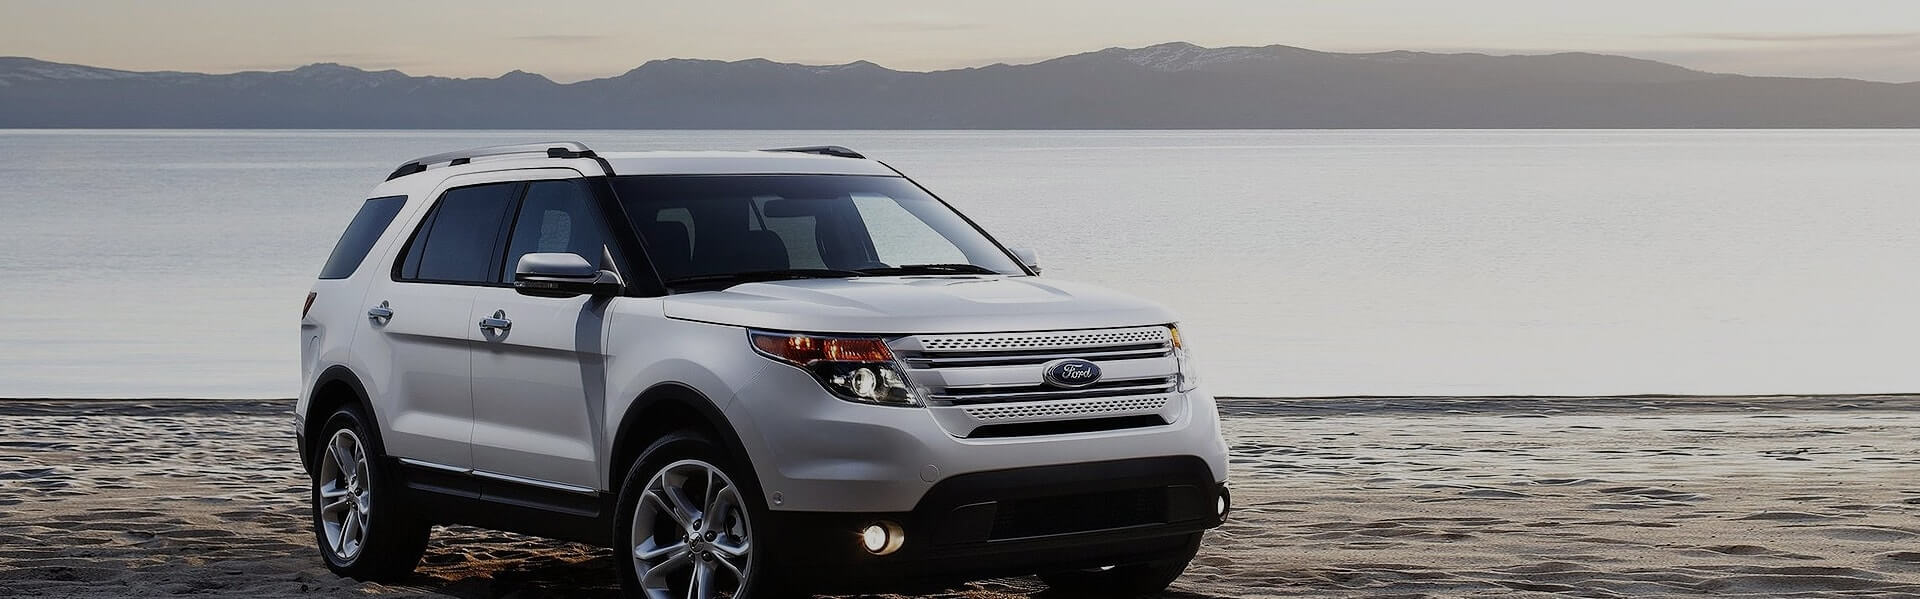 Used Usa Cars Buy With Confidence